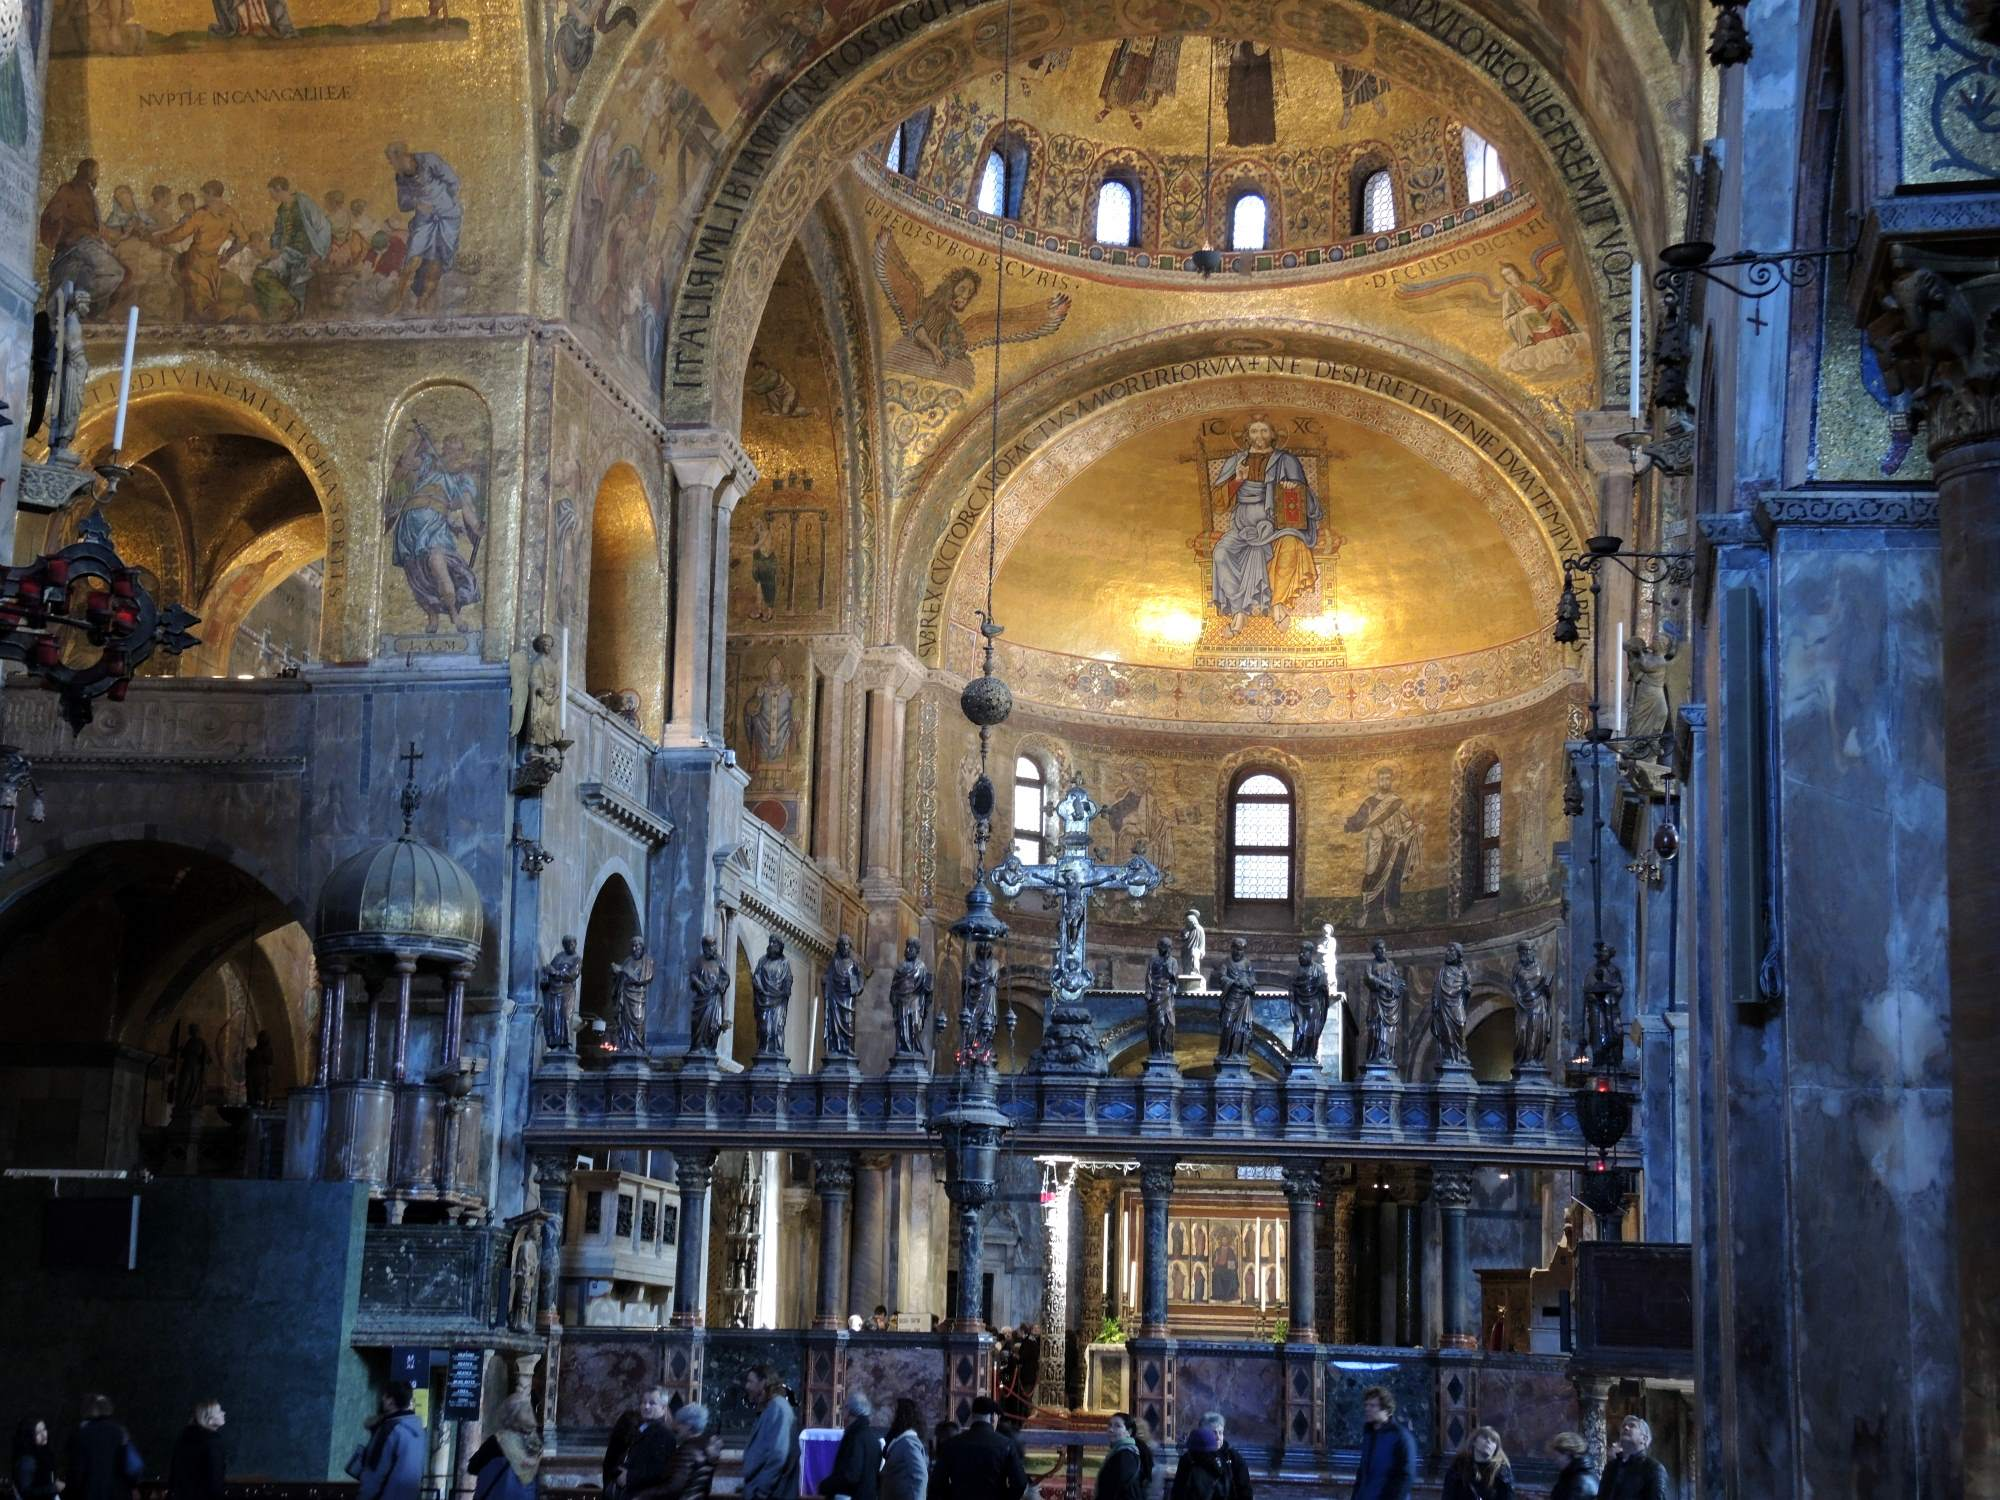 Interior of St. Mark's church with mosaics